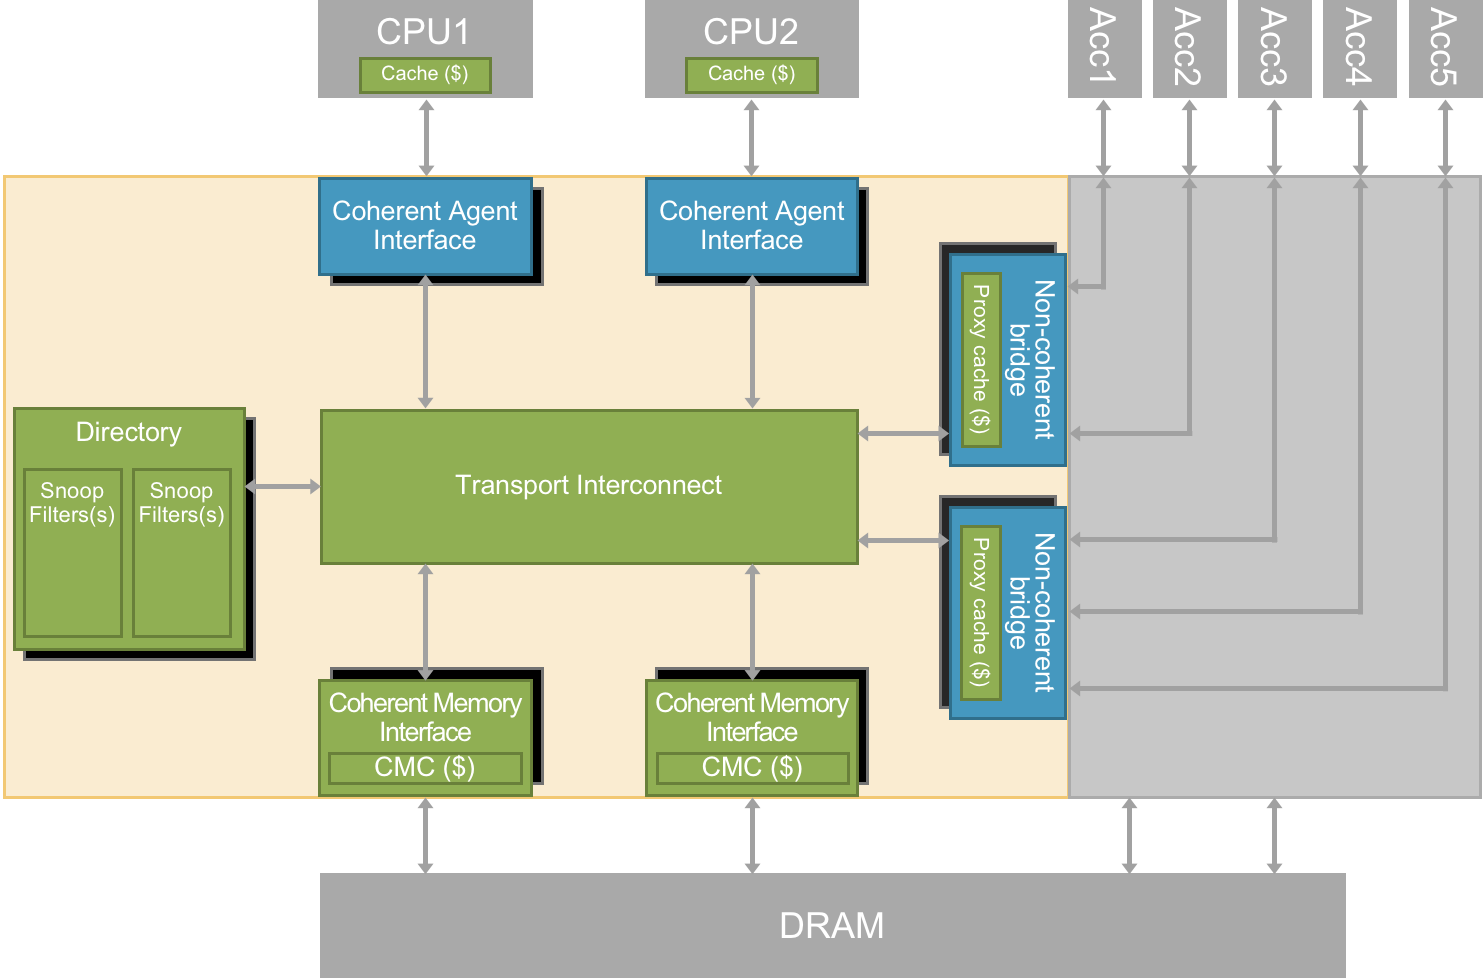 ArterisIP Advances Machine Learning SoC Design with Ncore 2.0 Cache Coherent Interconnect and Resilience Package